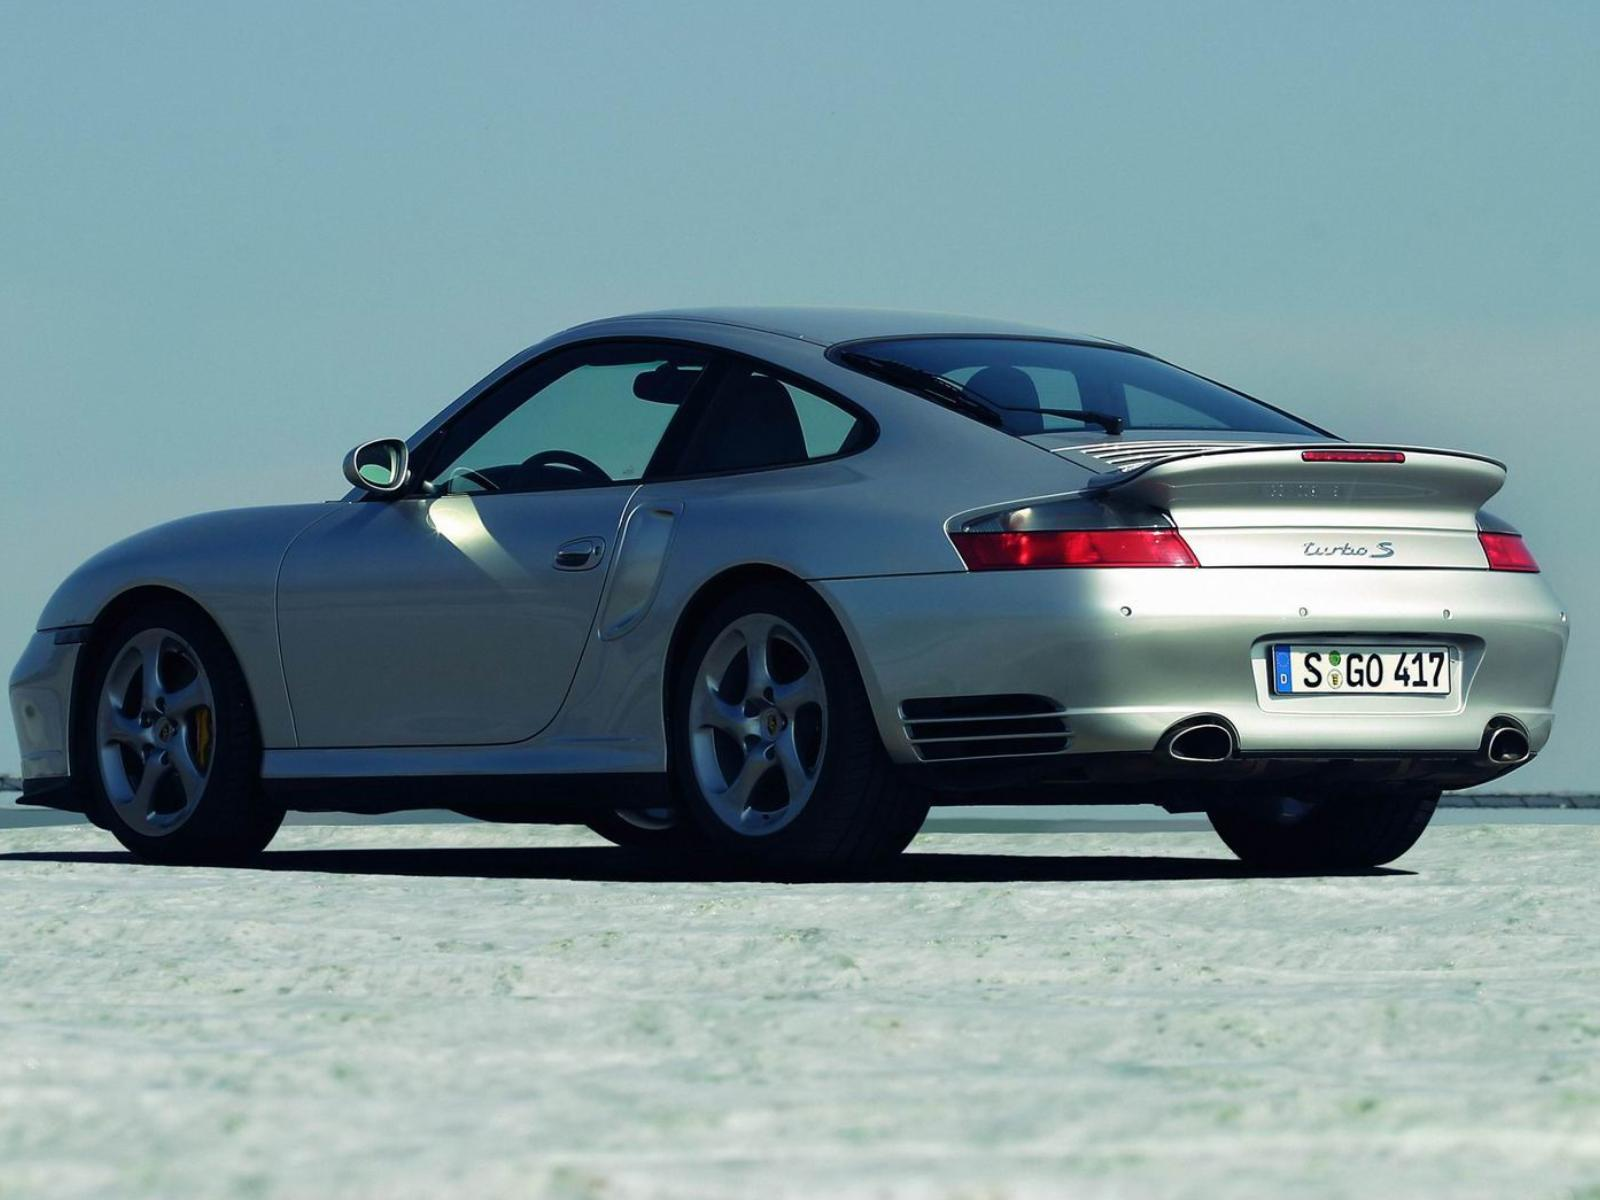 Porsche 996 911 Turbo S photo 15408